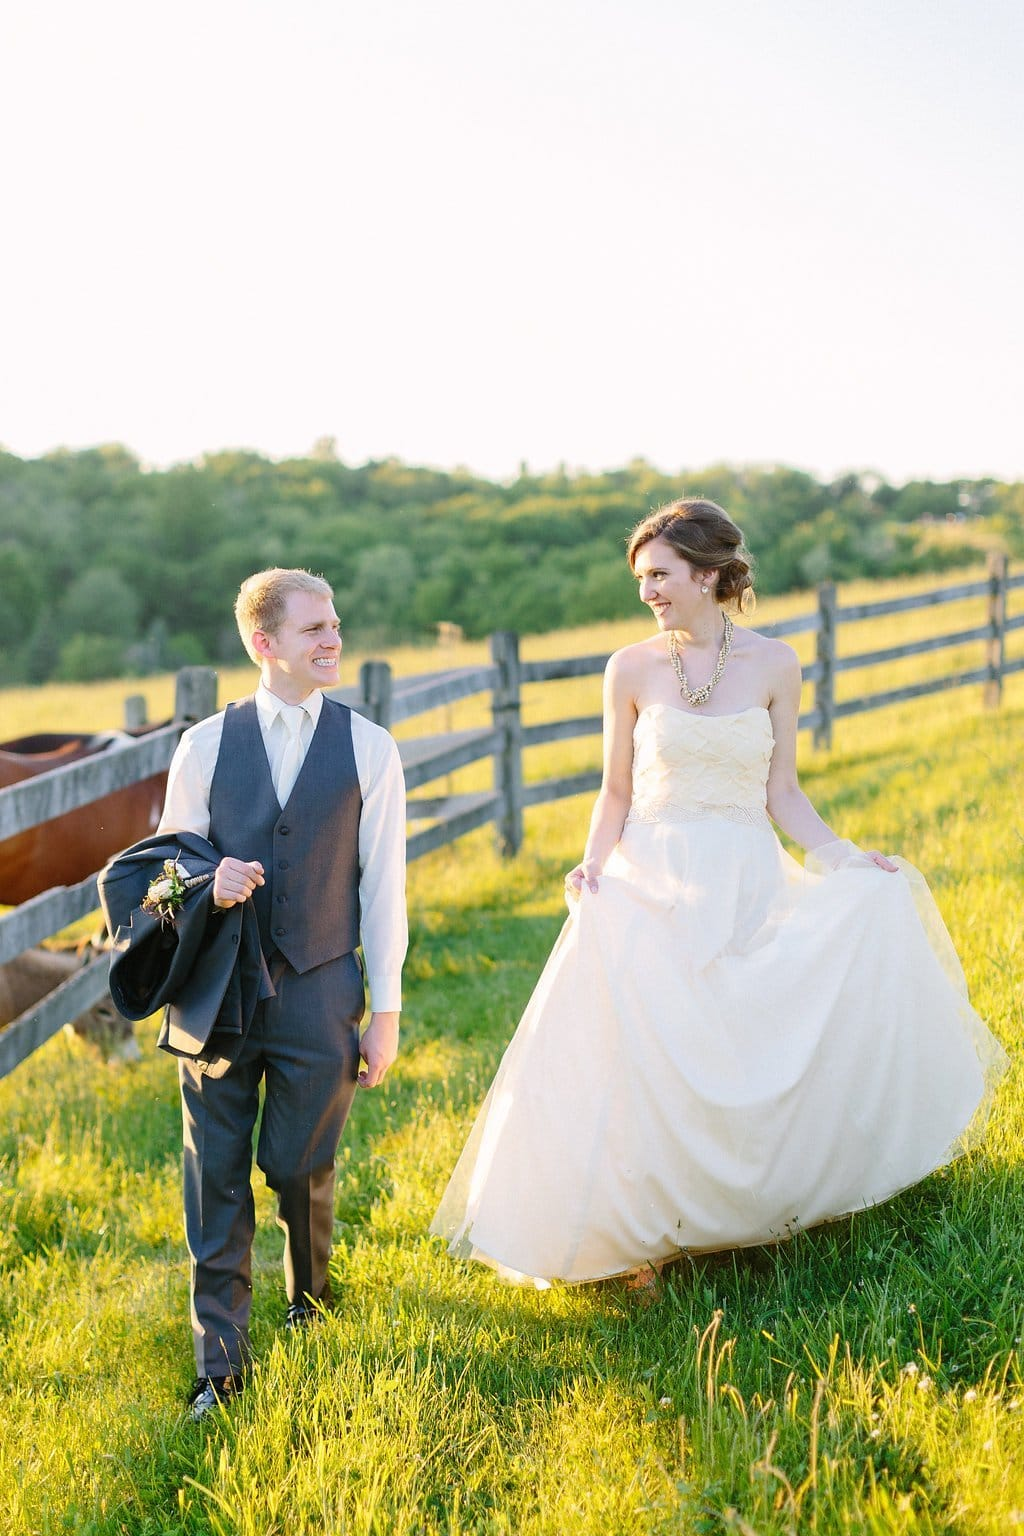 Bride and groom walking through a field with a farm horse